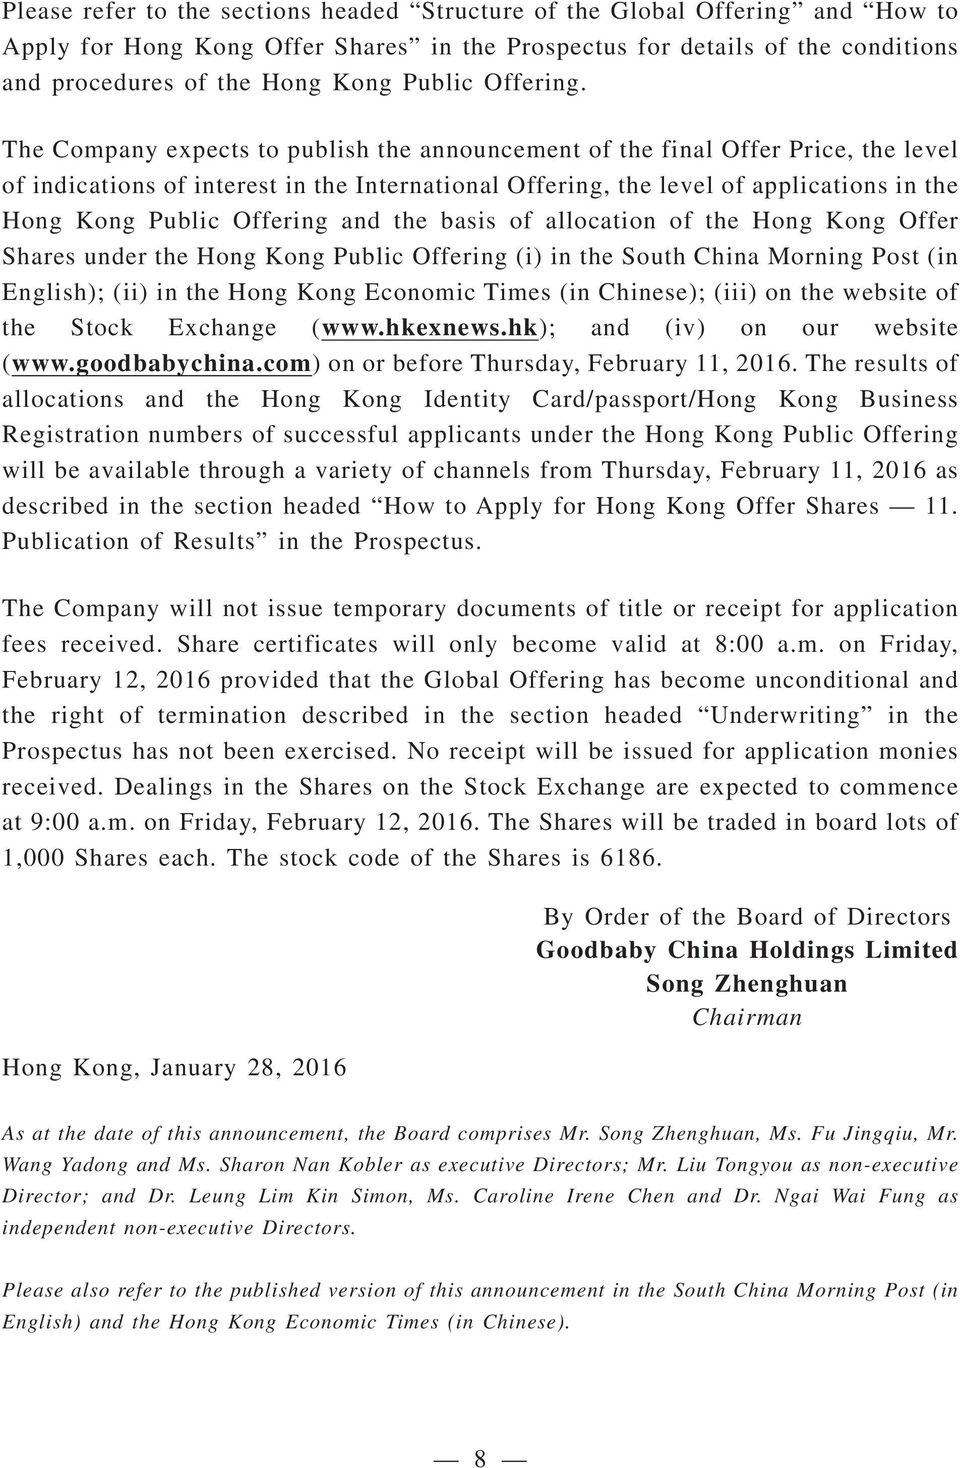 The Company expects to publish the announcement of the final Offer Price, the level of indications of interest in the International Offering, the level of applications in the Hong Kong Public